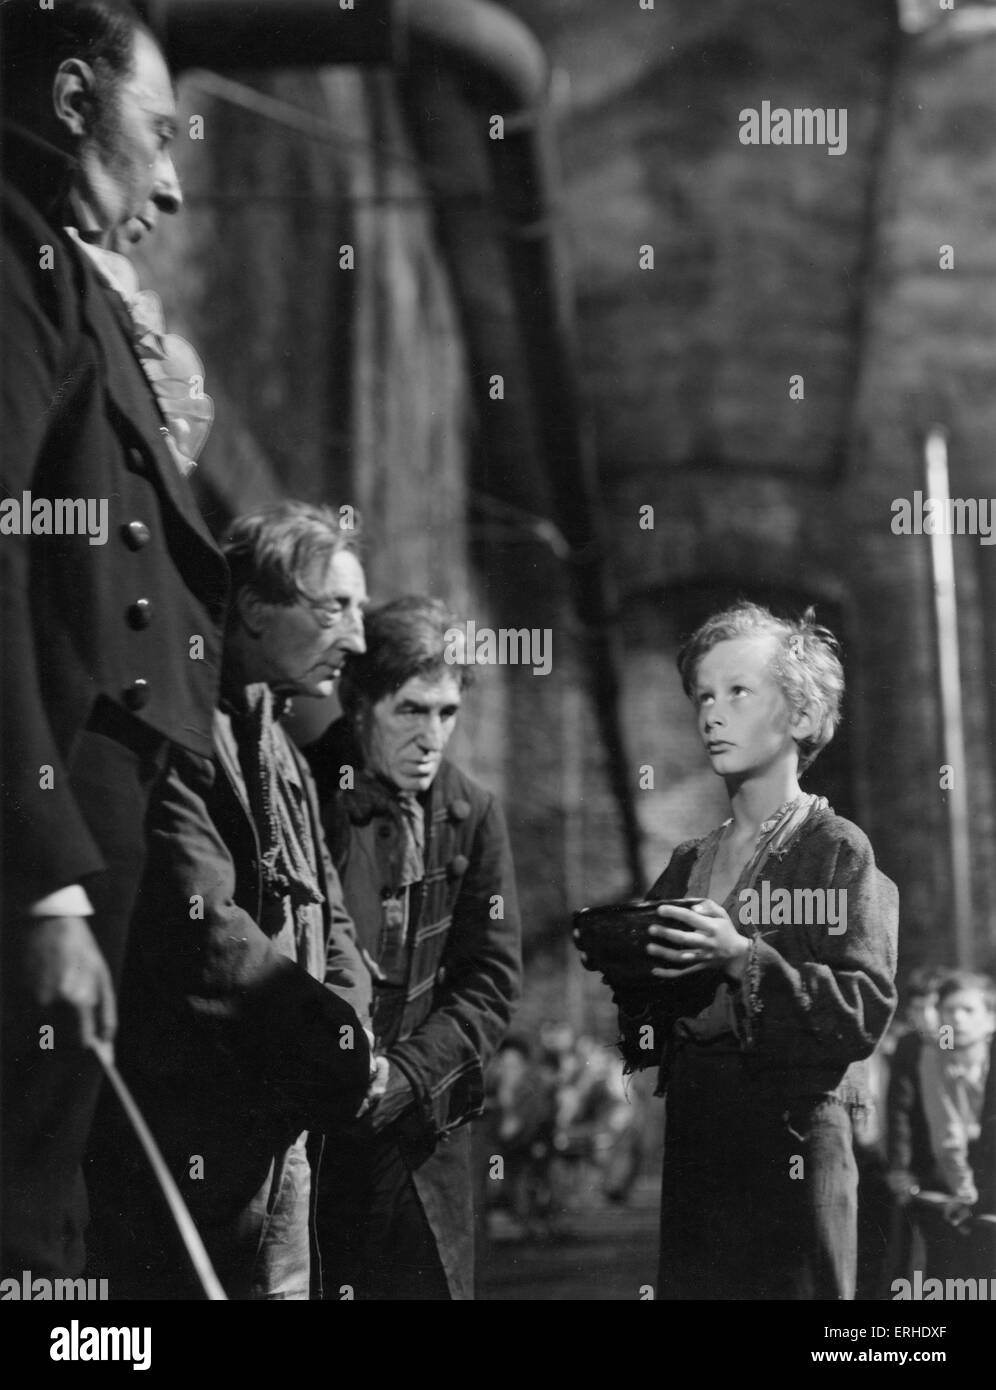 Oliver Twist. film still from 1948 Rank Film production of Charles Dickens  Oliver asks for more. British novelist, Stock Photo